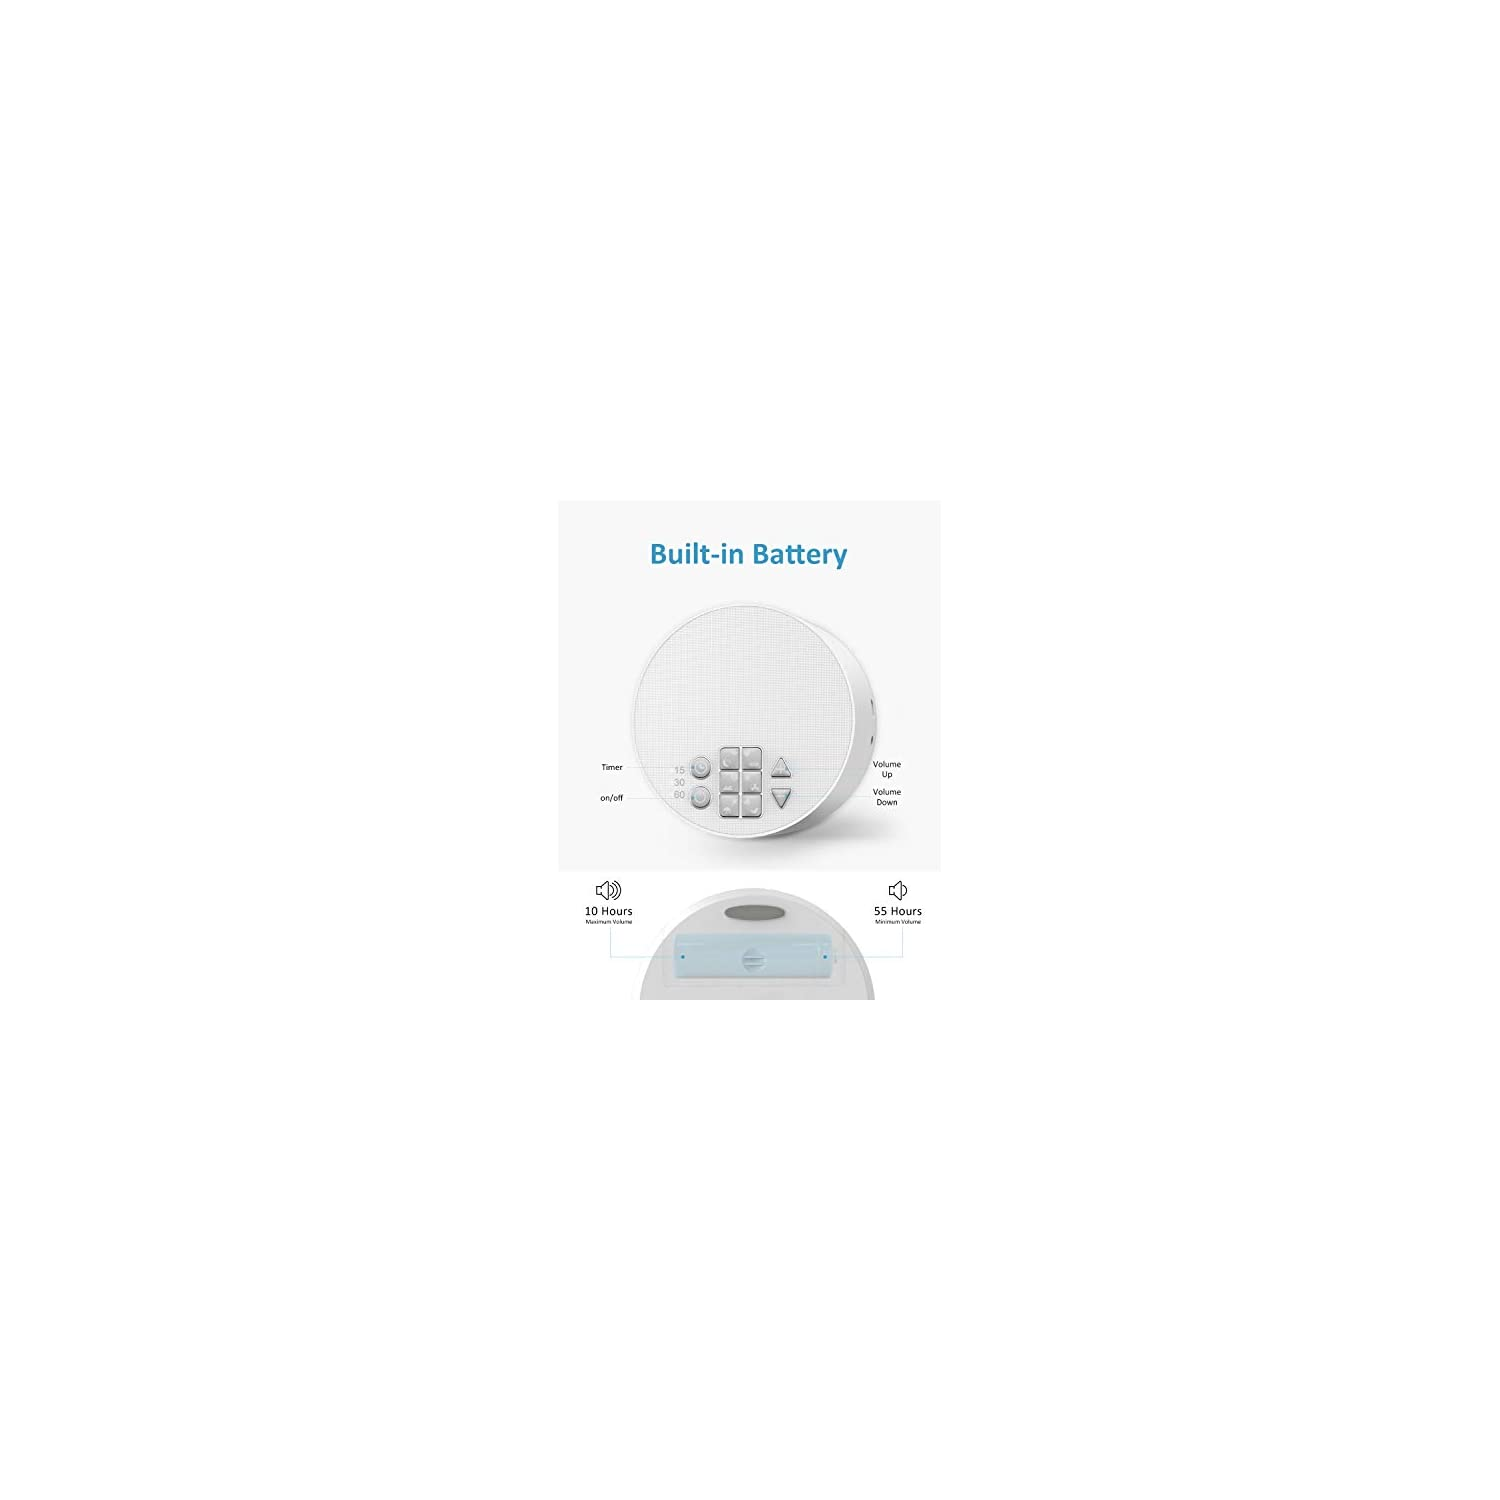 Portable White Noise Machine for Sleeping, dsleep Sound Machine with Non-Looping Soothing Sounds for Baby, Kids, Adults, Traveler, Rechargeable Sleep Noise Machine for Travel Office Home.